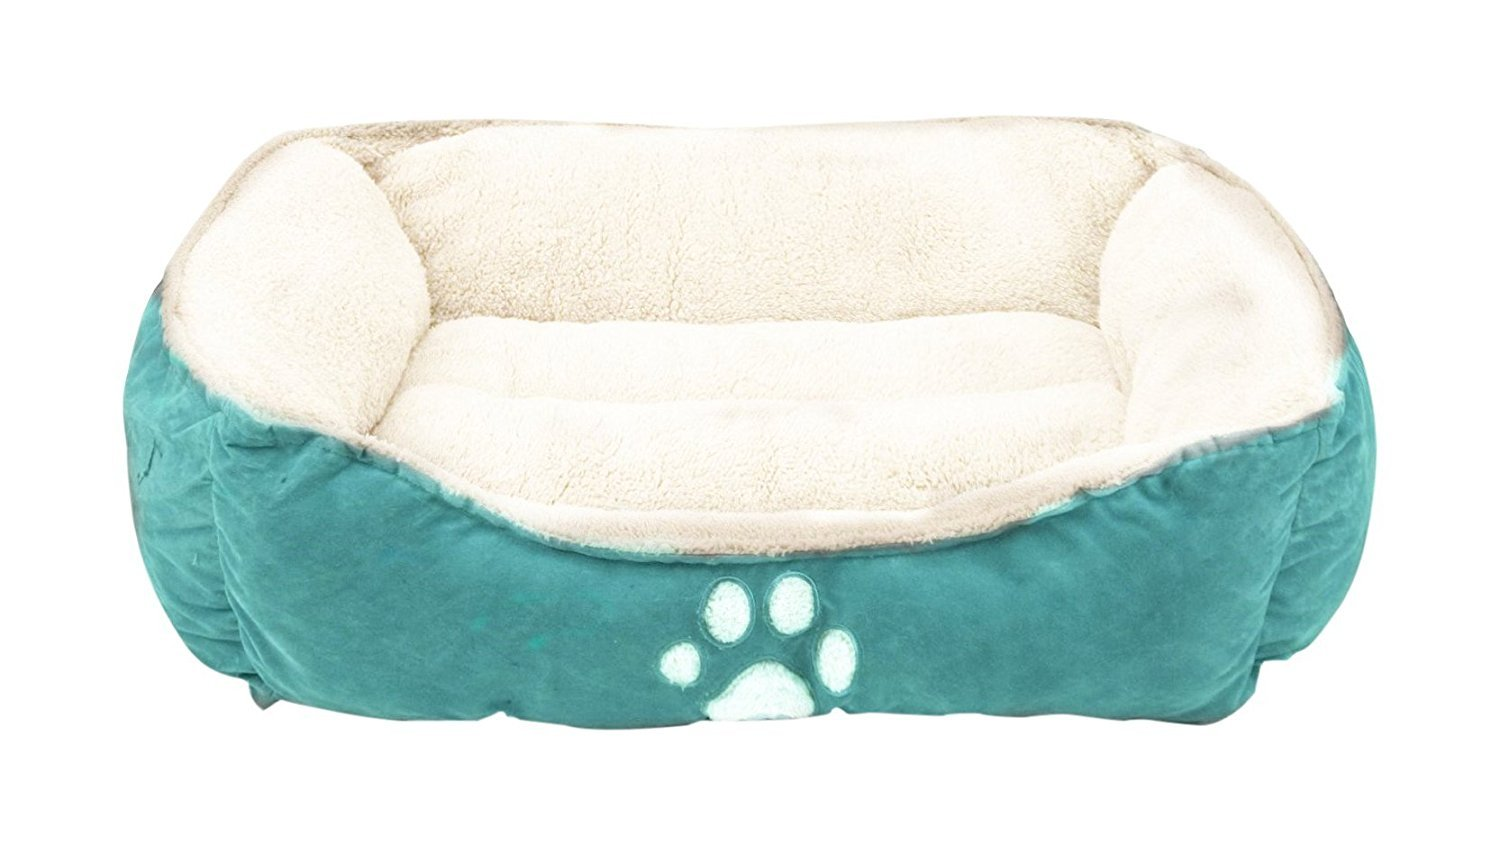 Felicite Pet Bed Fit Medium Sized Dog/Fat Cat, Machine Washable, Ultra Soft Pet Sofa,Dog Bed - Blue-25in